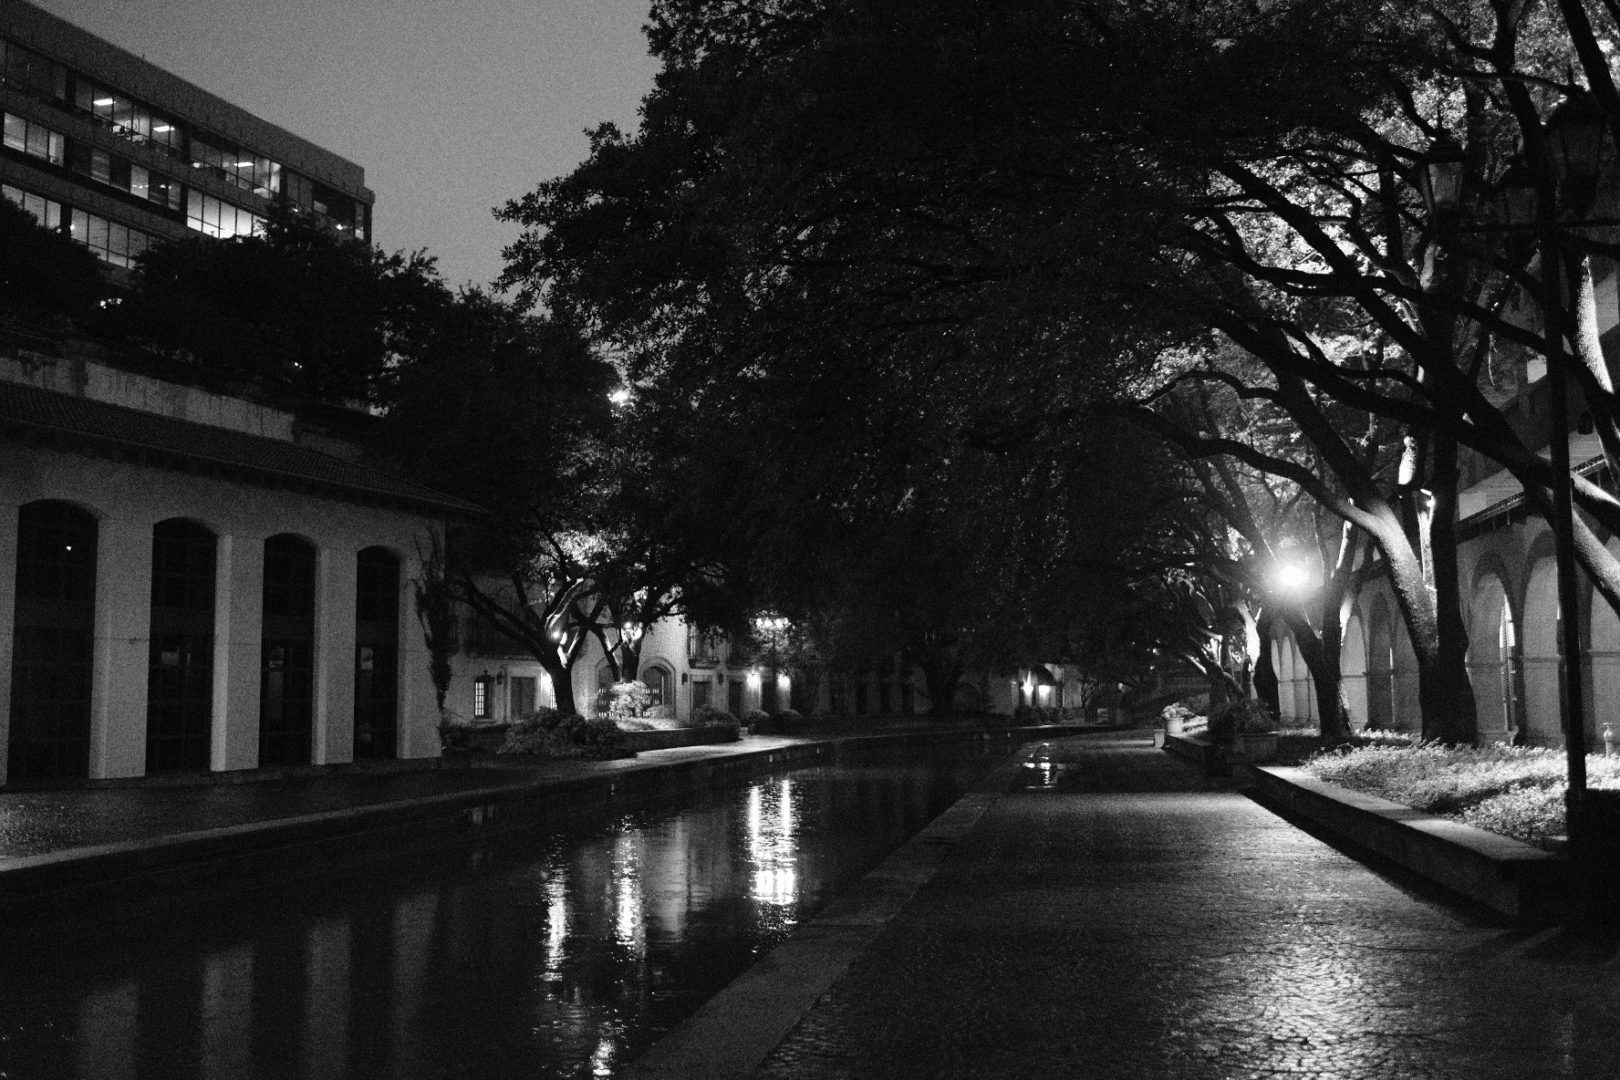 A B&W photo of a water way and Dallas in the dark.